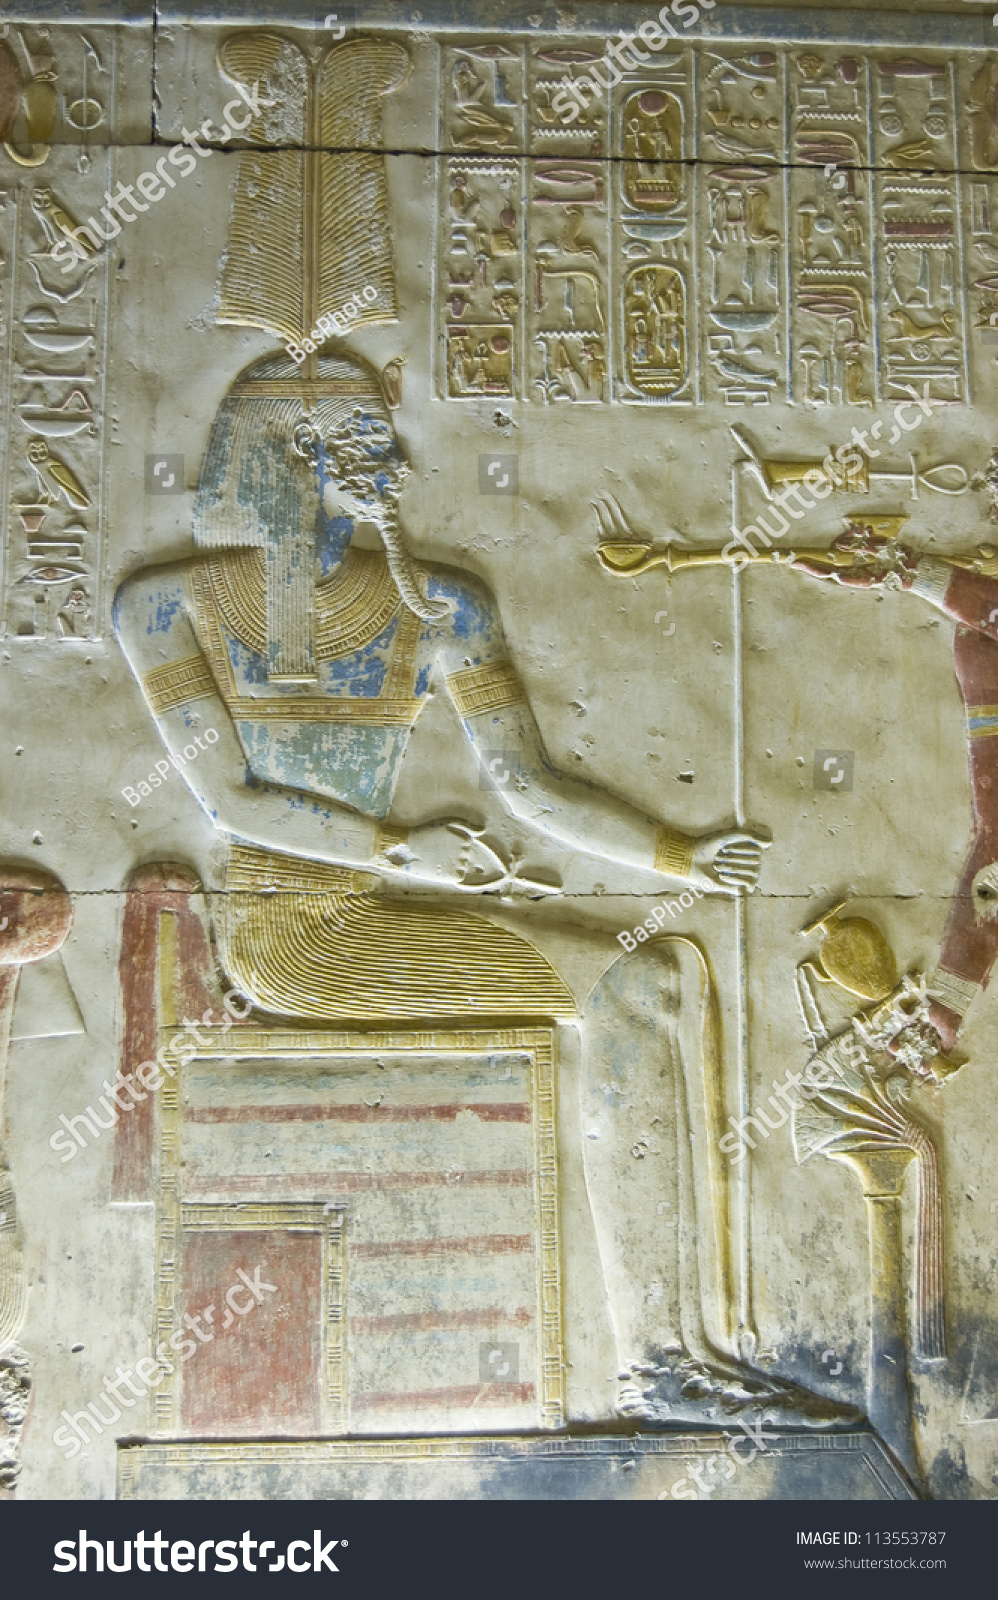 Bas relief carving of the ancient egyptian god amun